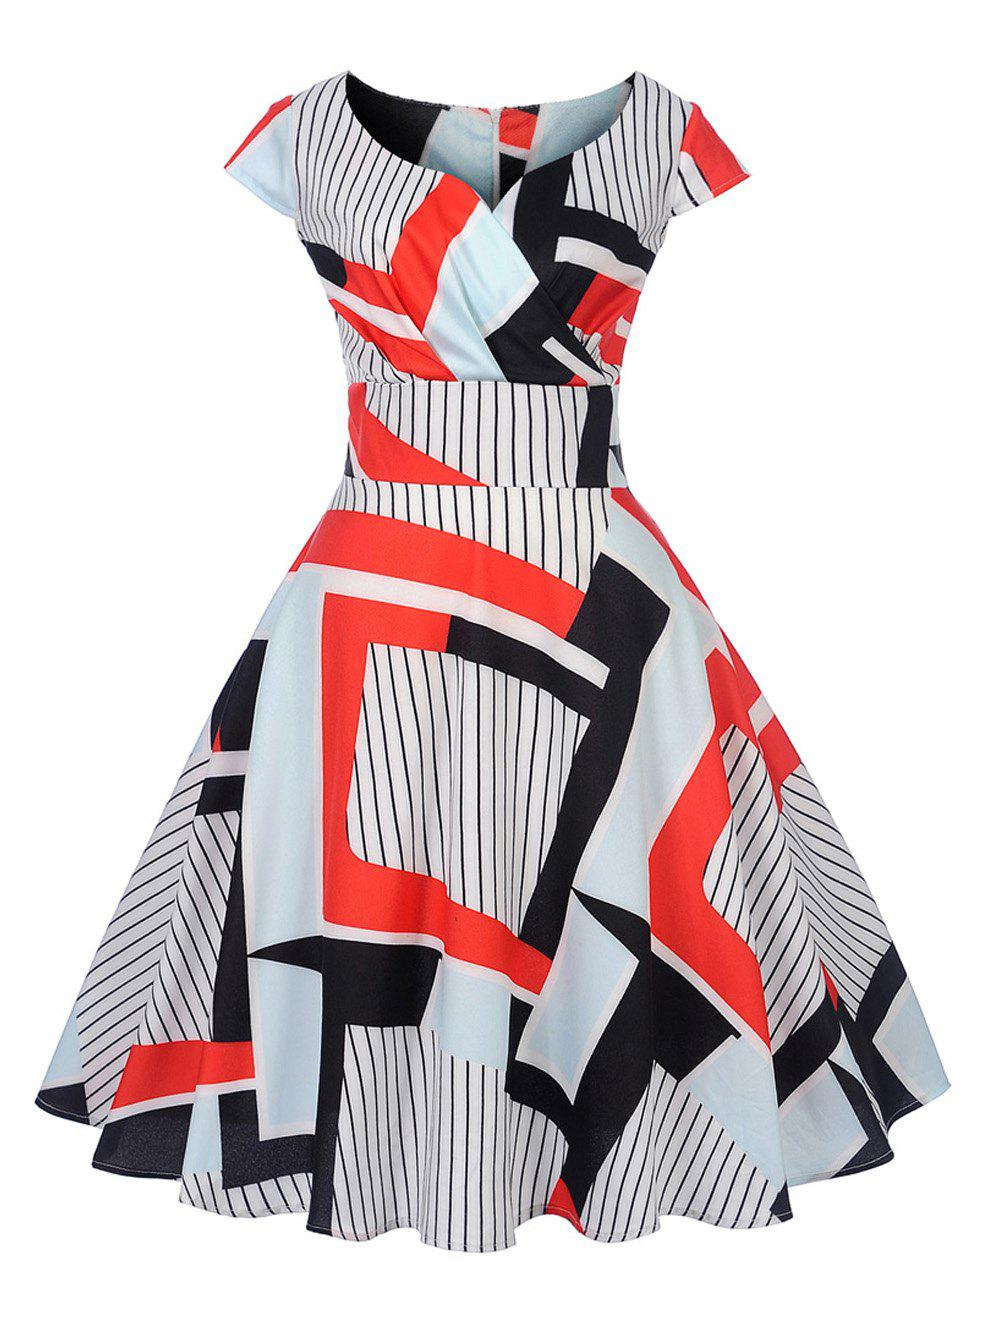 New Women's Vintage 50s 60s Printing Retro Rockabilly Pinup Housewife Party Swing Dress